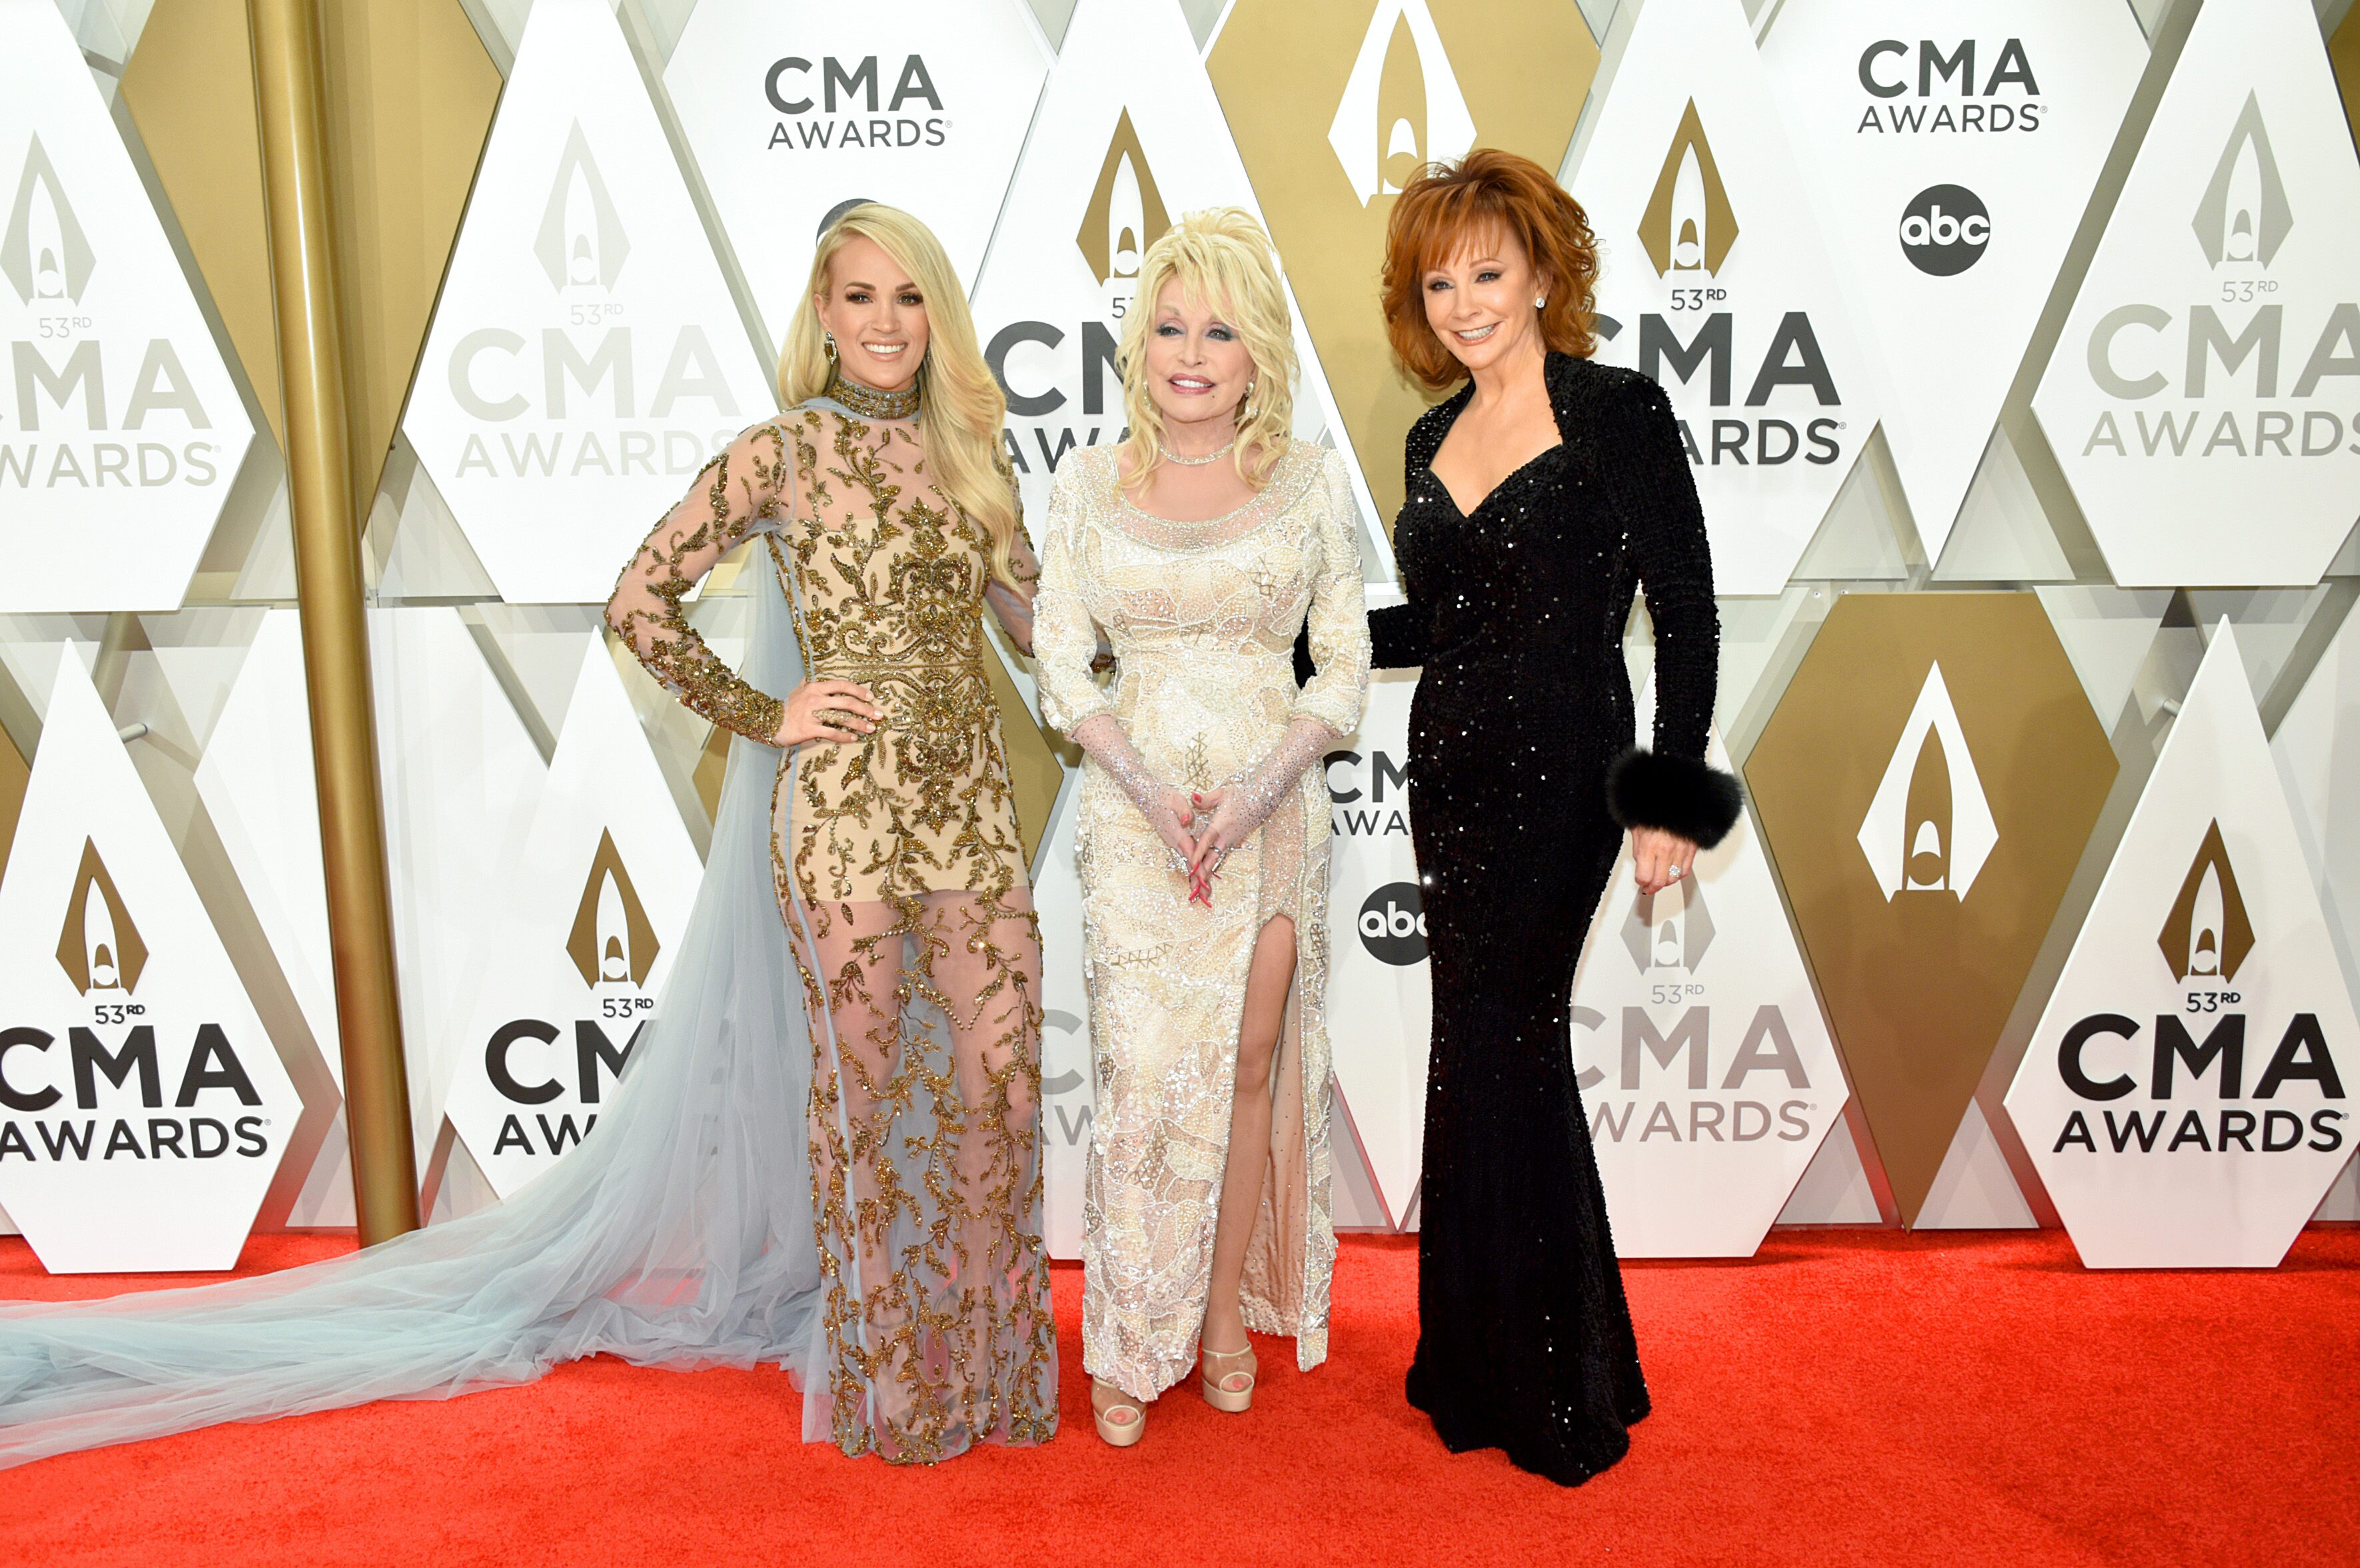 CMAs 2019: Carrie Underwood, Dolly